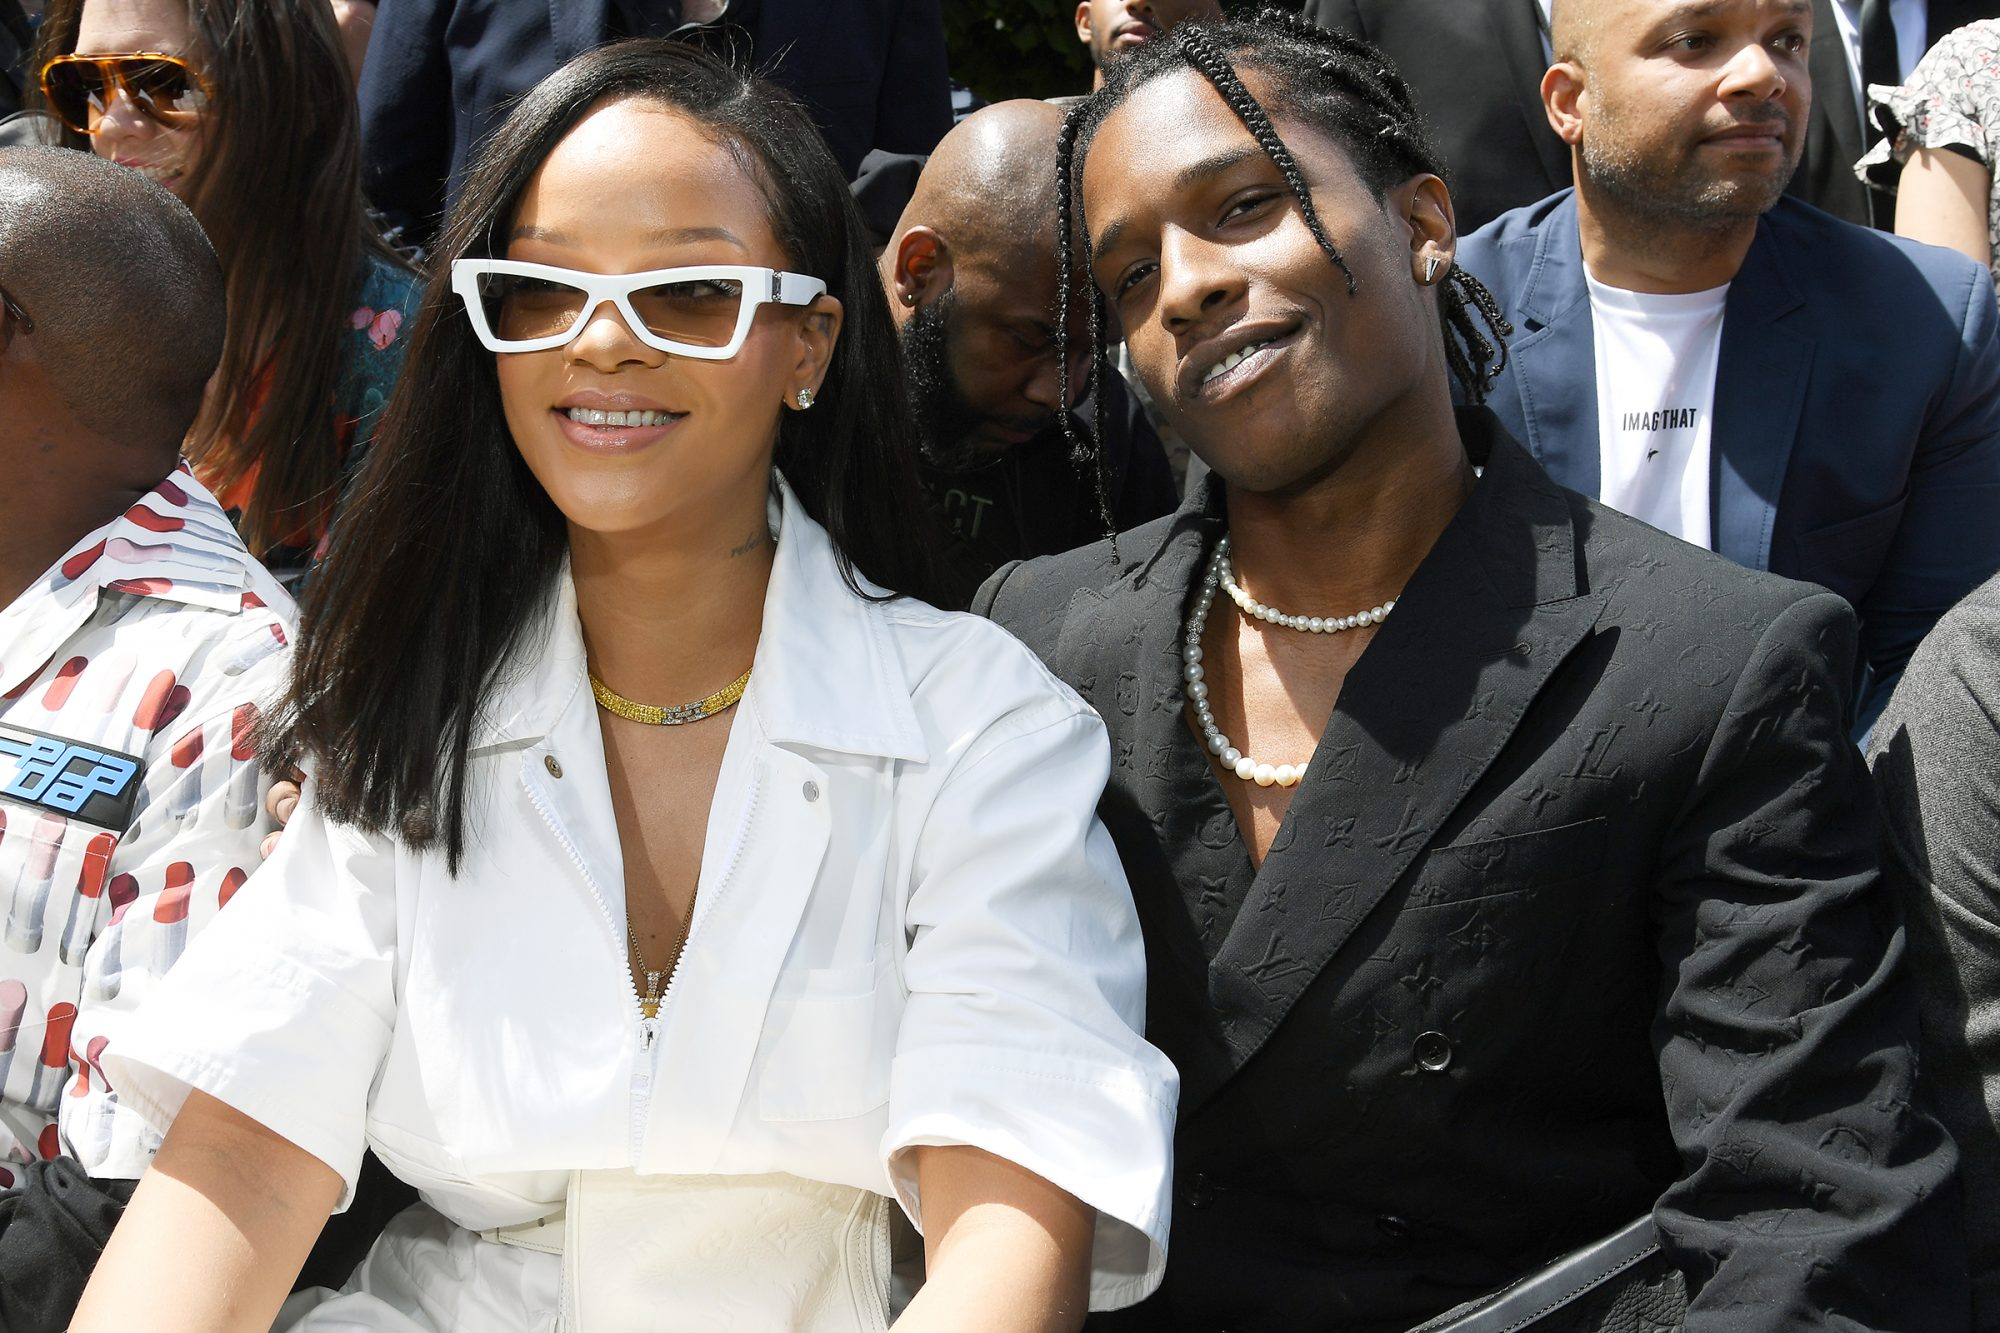 rihanna-asap-rocky-dating-mr-eazi-range-rover-new-car-newcastle-coronavirus-latest-news-global-world-stories-tuesday-december-2020-style-rave